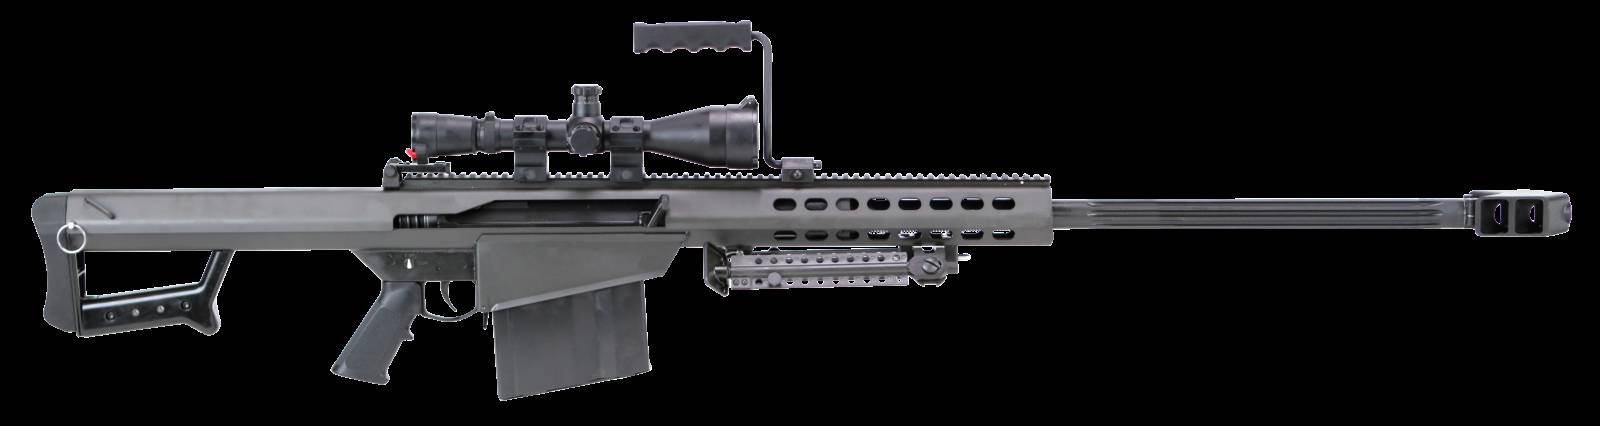 Barrett 13317 M82 A1 with Scope Semi-Automatic 50 Browning Machine ... picture download